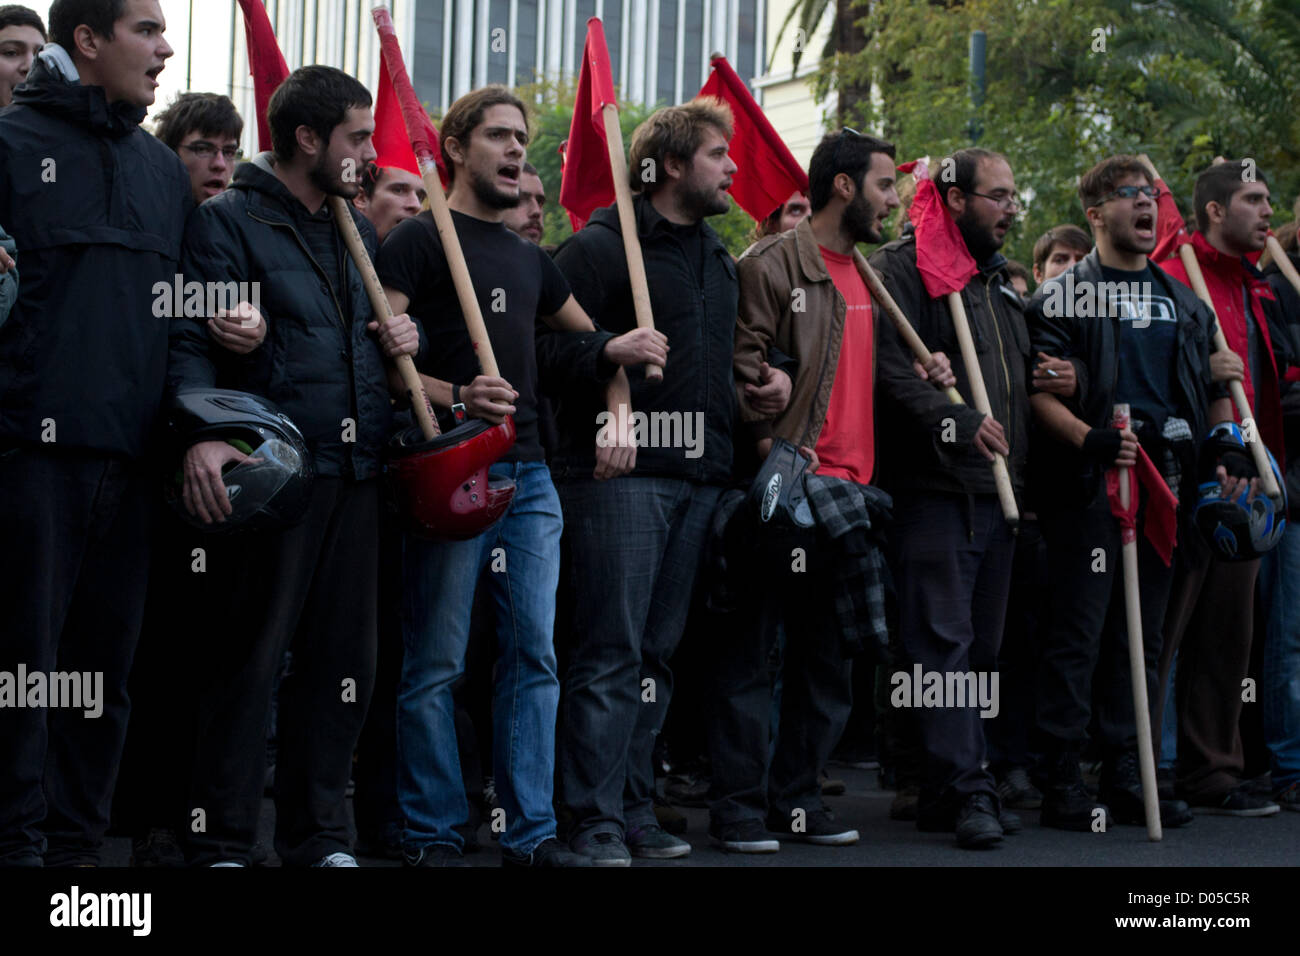 Athens, Greece, 17th November 2012.  A massive demonstration takes place in memory of the Athens Polytechnic Students - Stock Image